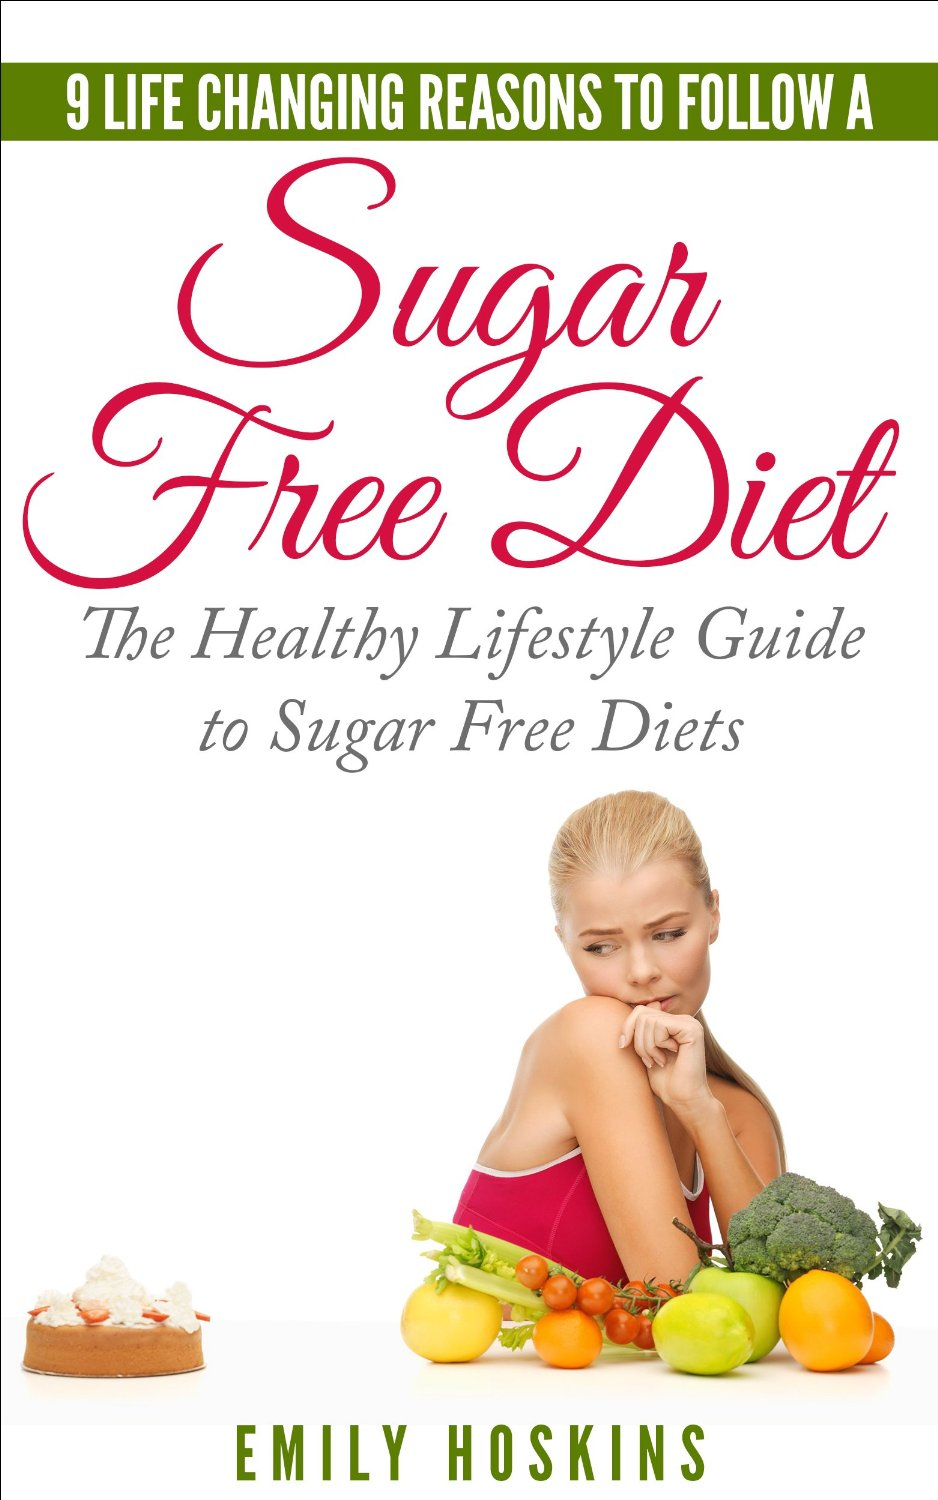 Sugar Free: 9 Life Changing Reasons To Follow A Sugar Free Diet free download